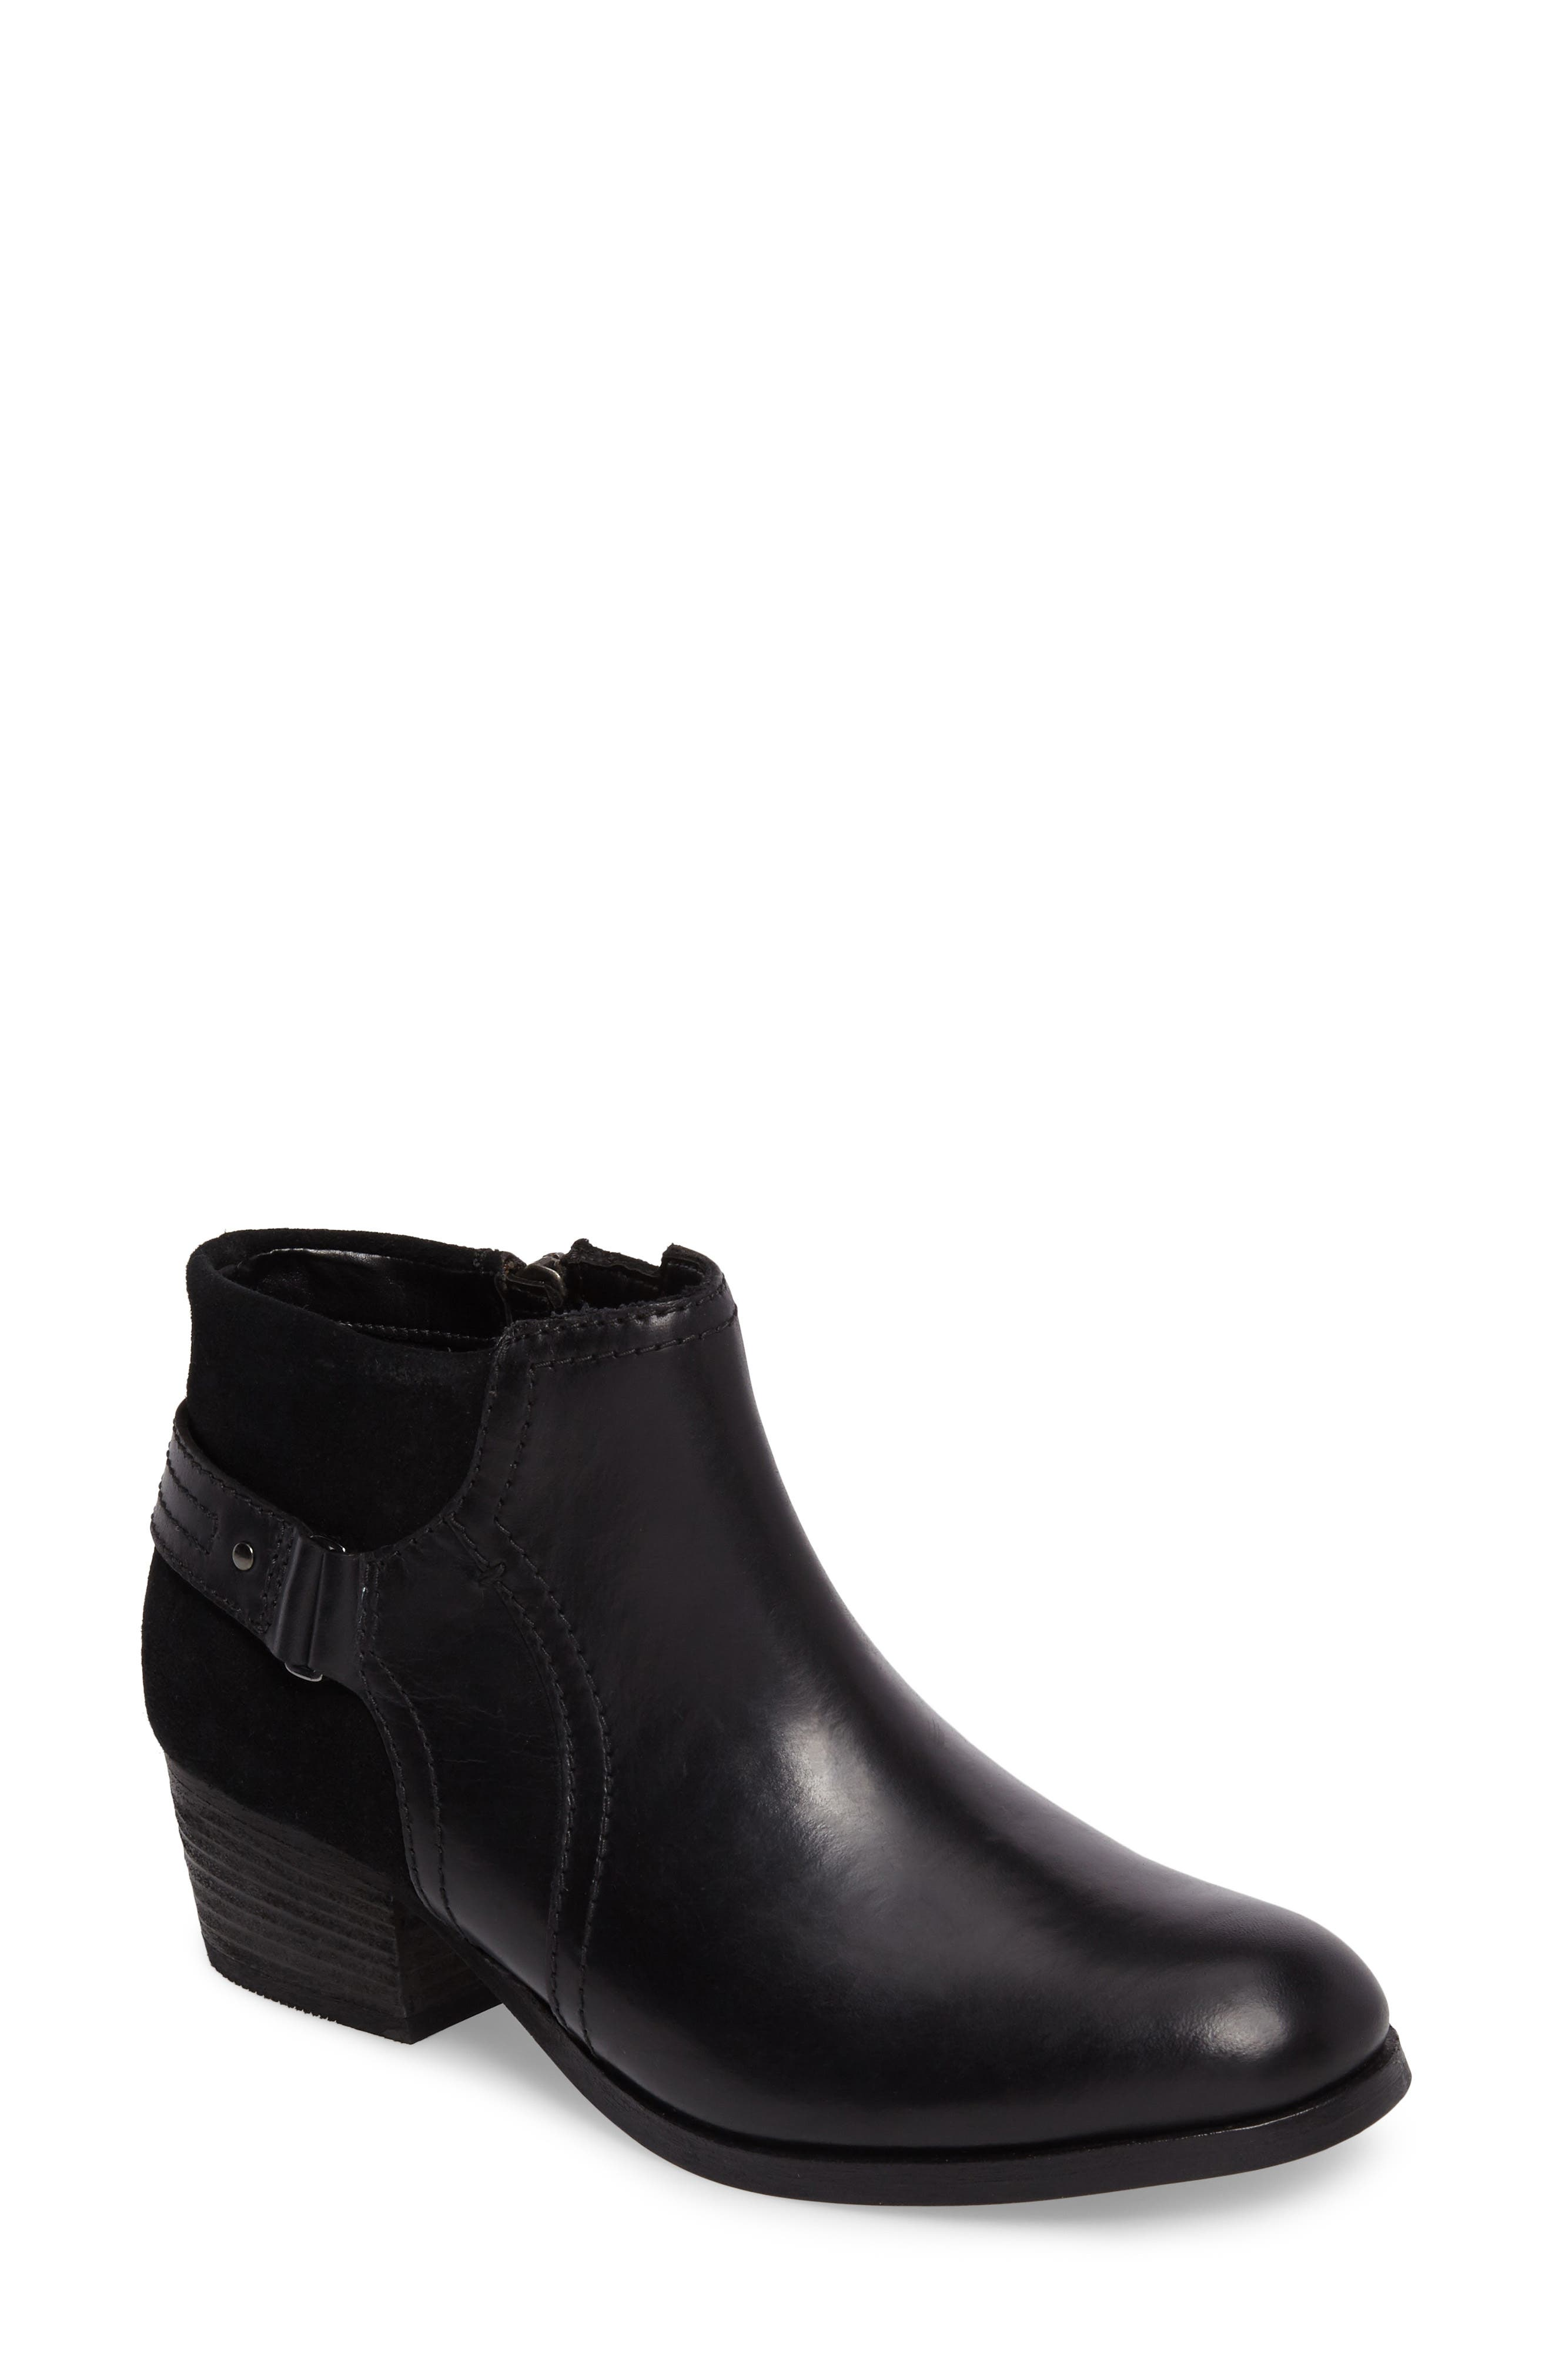 Maypearl Lilac Bootie,                             Main thumbnail 1, color,                             Black Leather